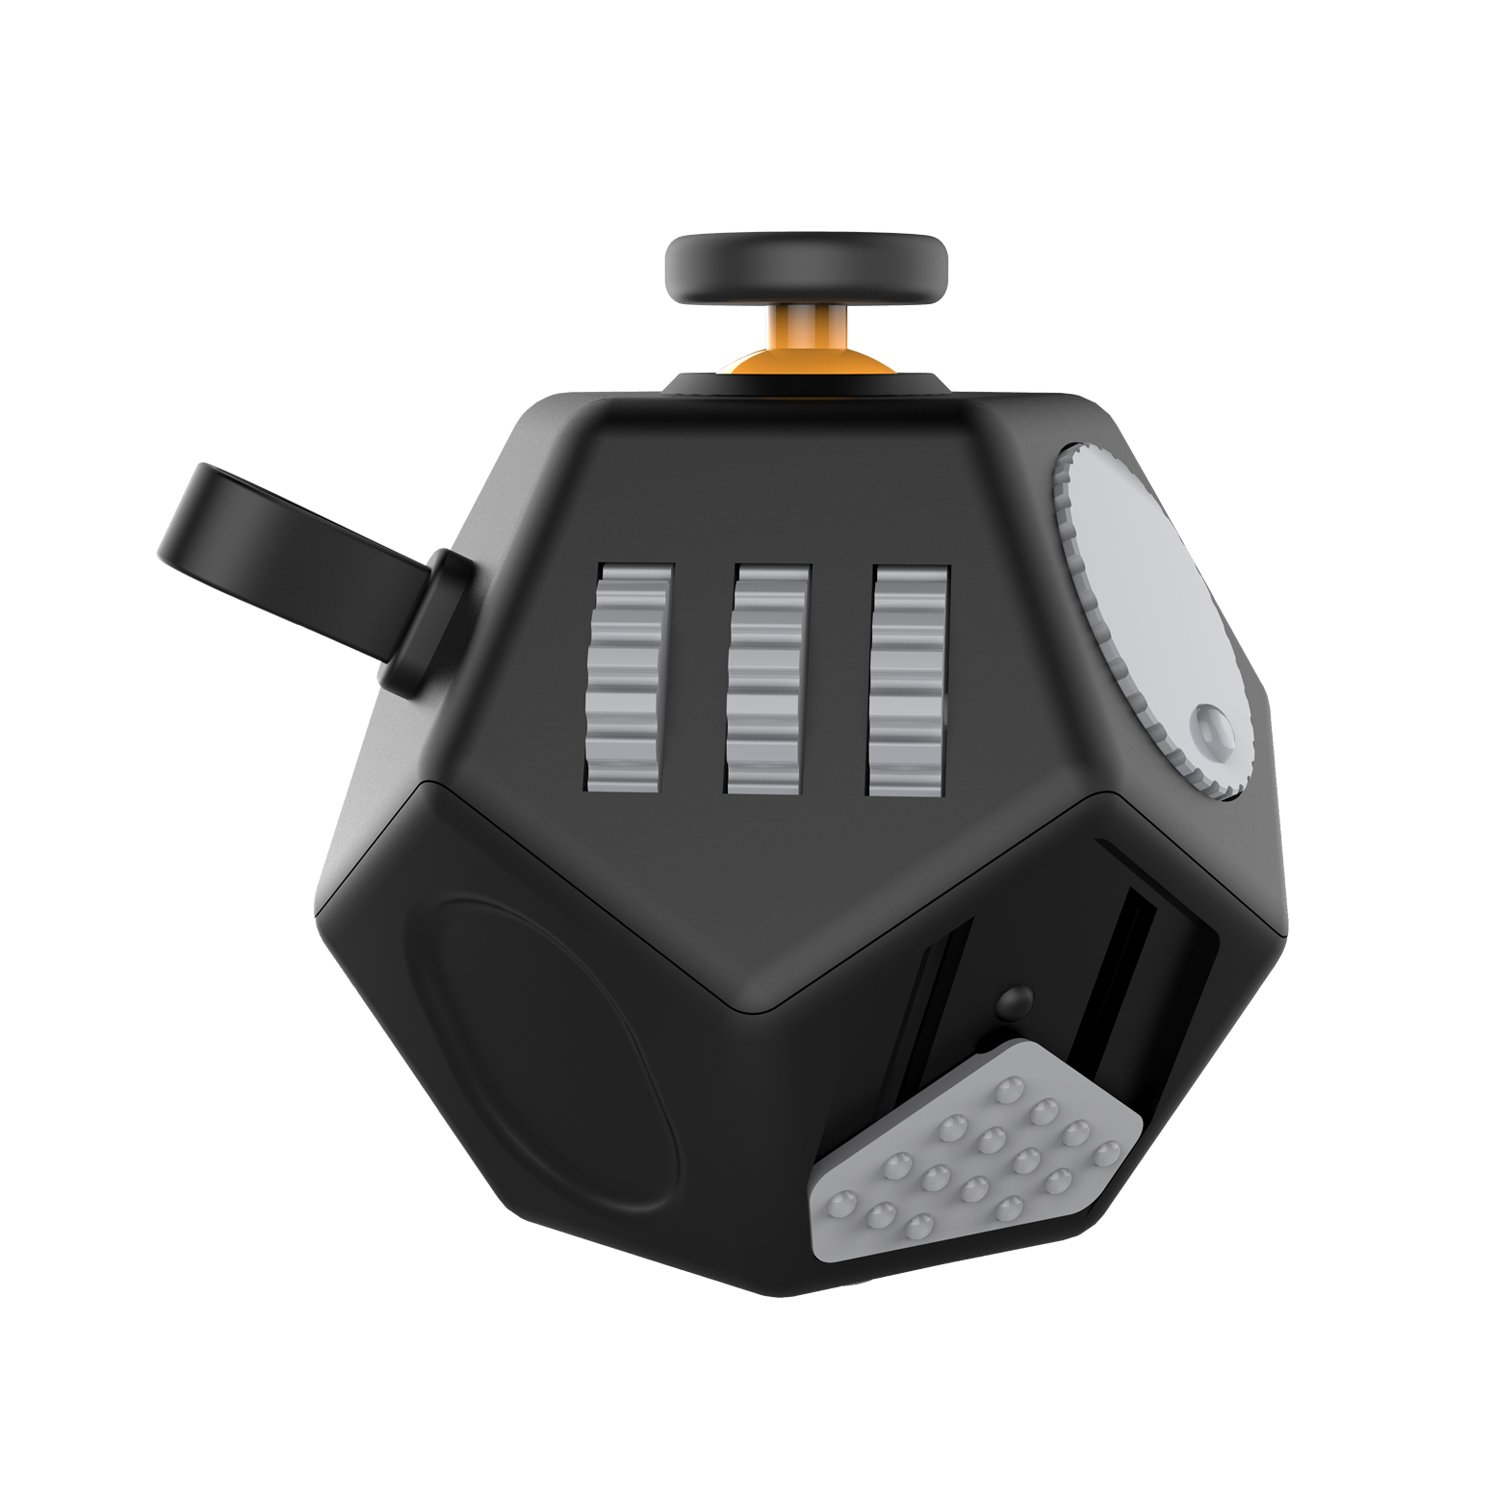 Fidget Cube,Decompression Cube Relieves Anxiety And Stress For Children Teens Adults,Easy To Carry And Use (Black)